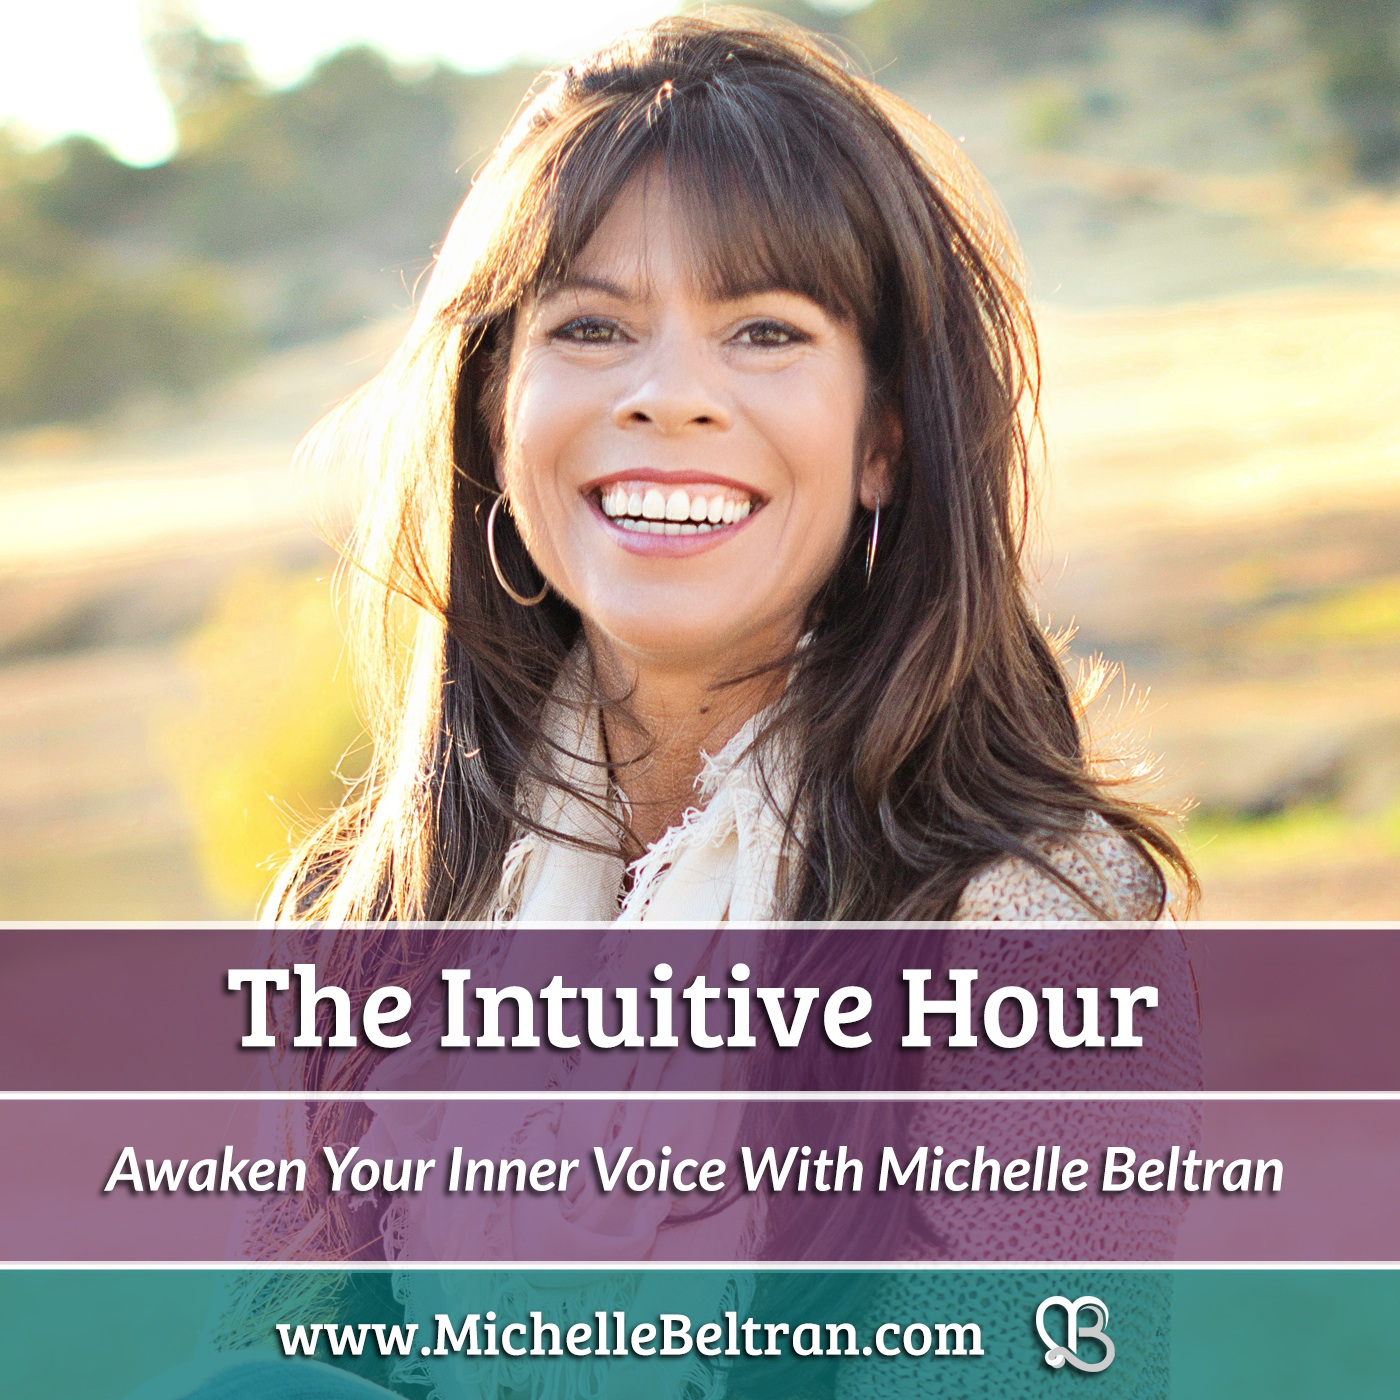 A Powerful Personal Story & Trusting Your Gut Sense